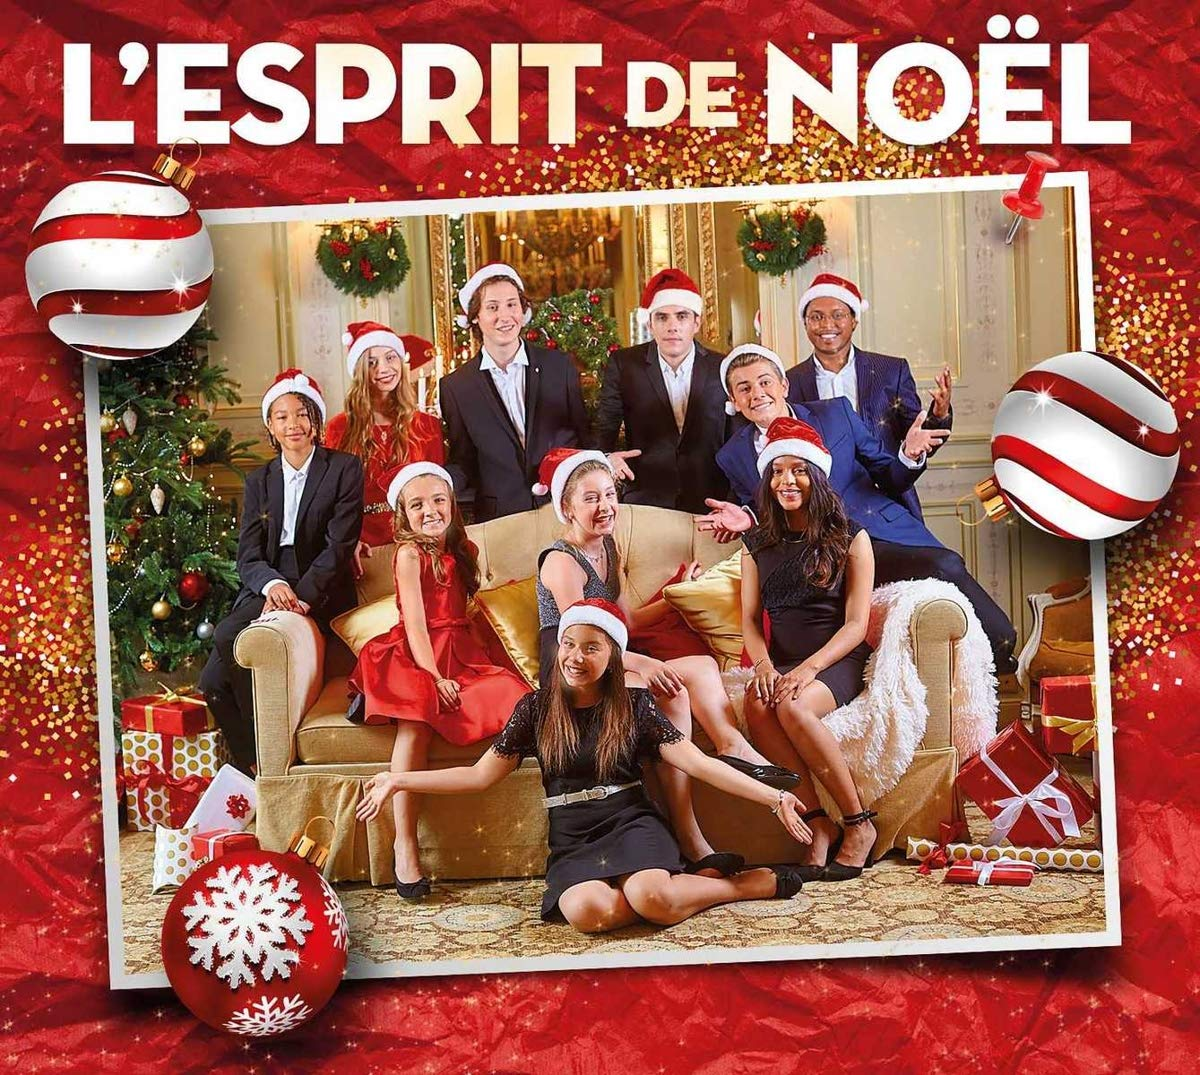 Esprit De Noel Various Artists   L'Esprit De Noel / Various   Amazon.Music